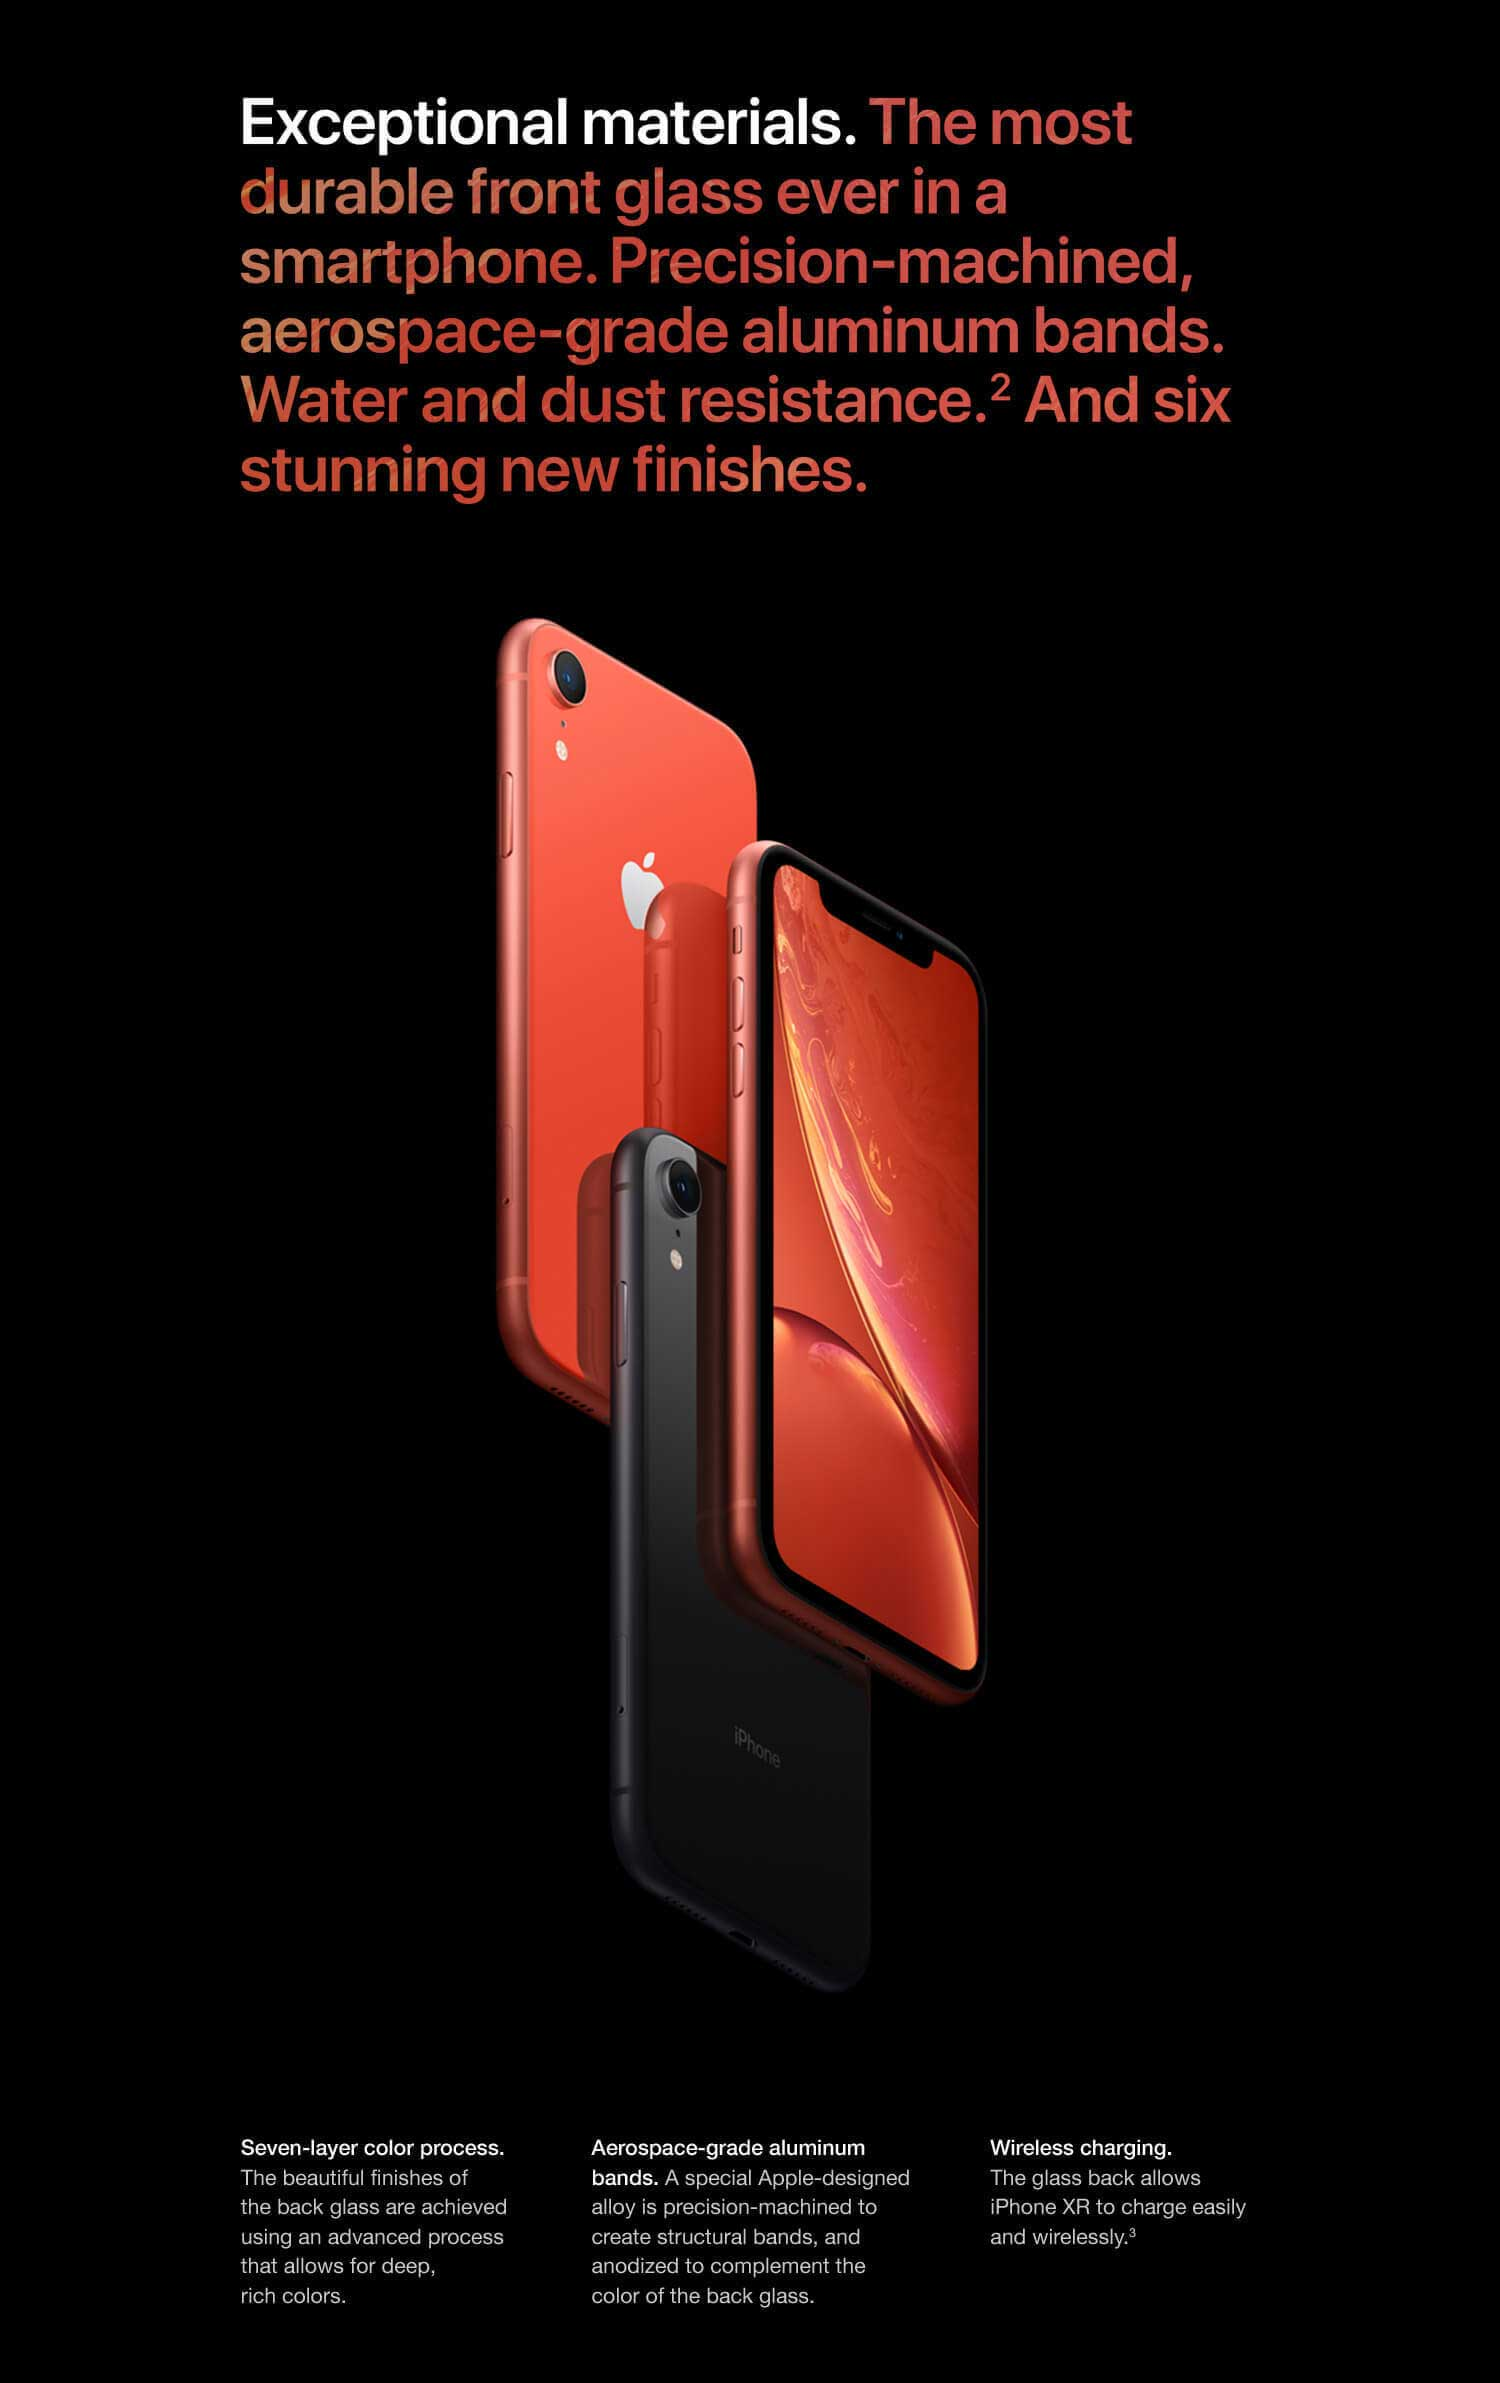 iPhone XR color red and black